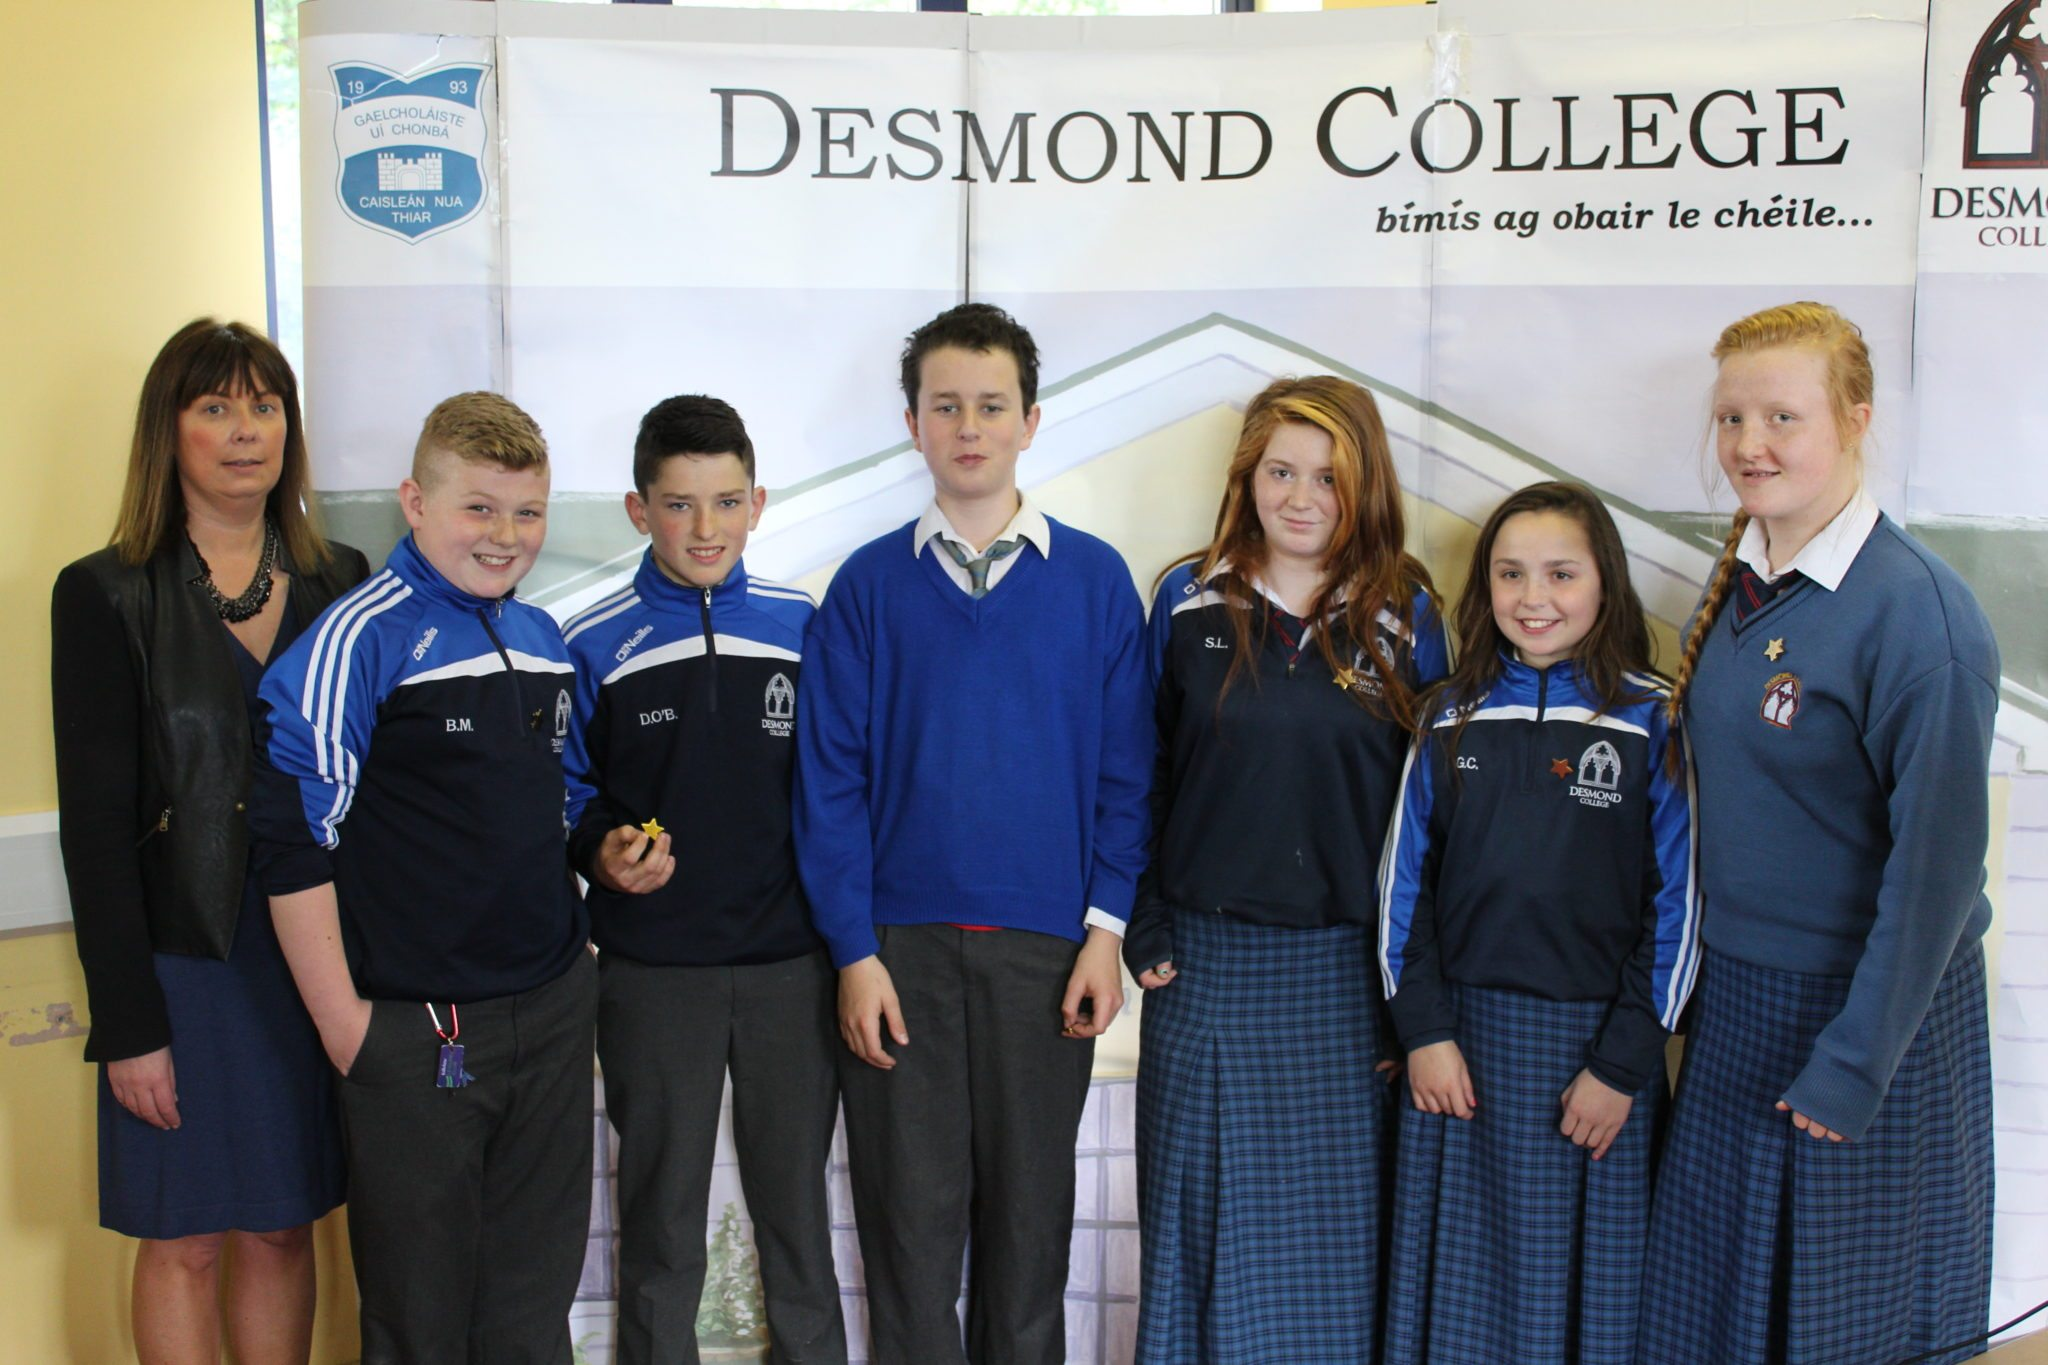 Desmond College Student Awards: May 2015: CO-OPERATION AND DILIGENCE AWARDS : 1st year : Ms Cregan with Bryan Mortell, David O'Brien, Sean O'Ceallaigh, Sarah Leahy, Genevive Collins and Ava Cashin